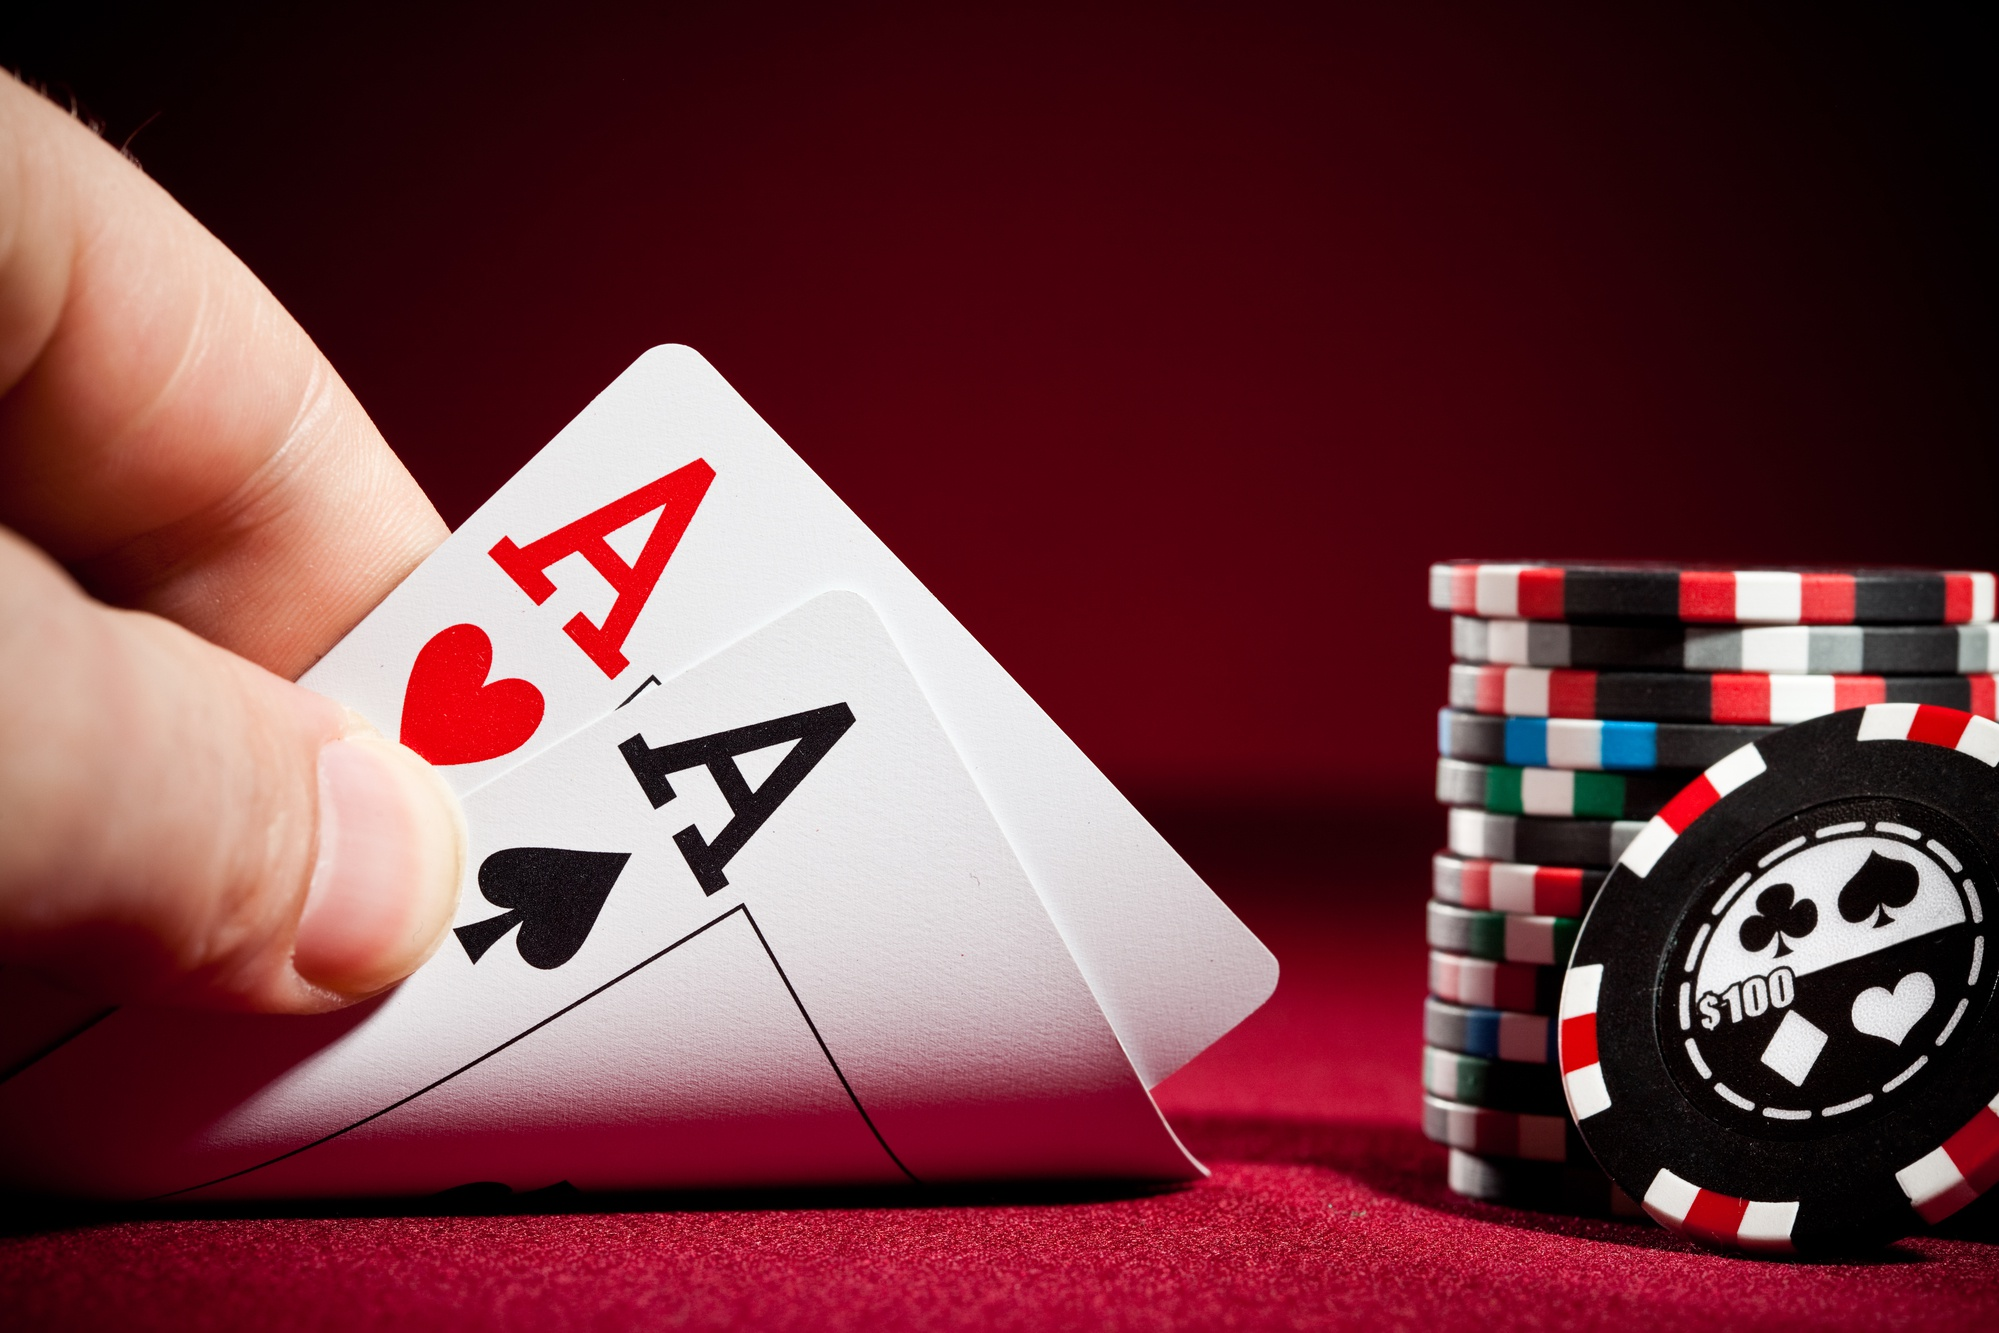 Don't Just Sit There! Start Getting More Online Casino